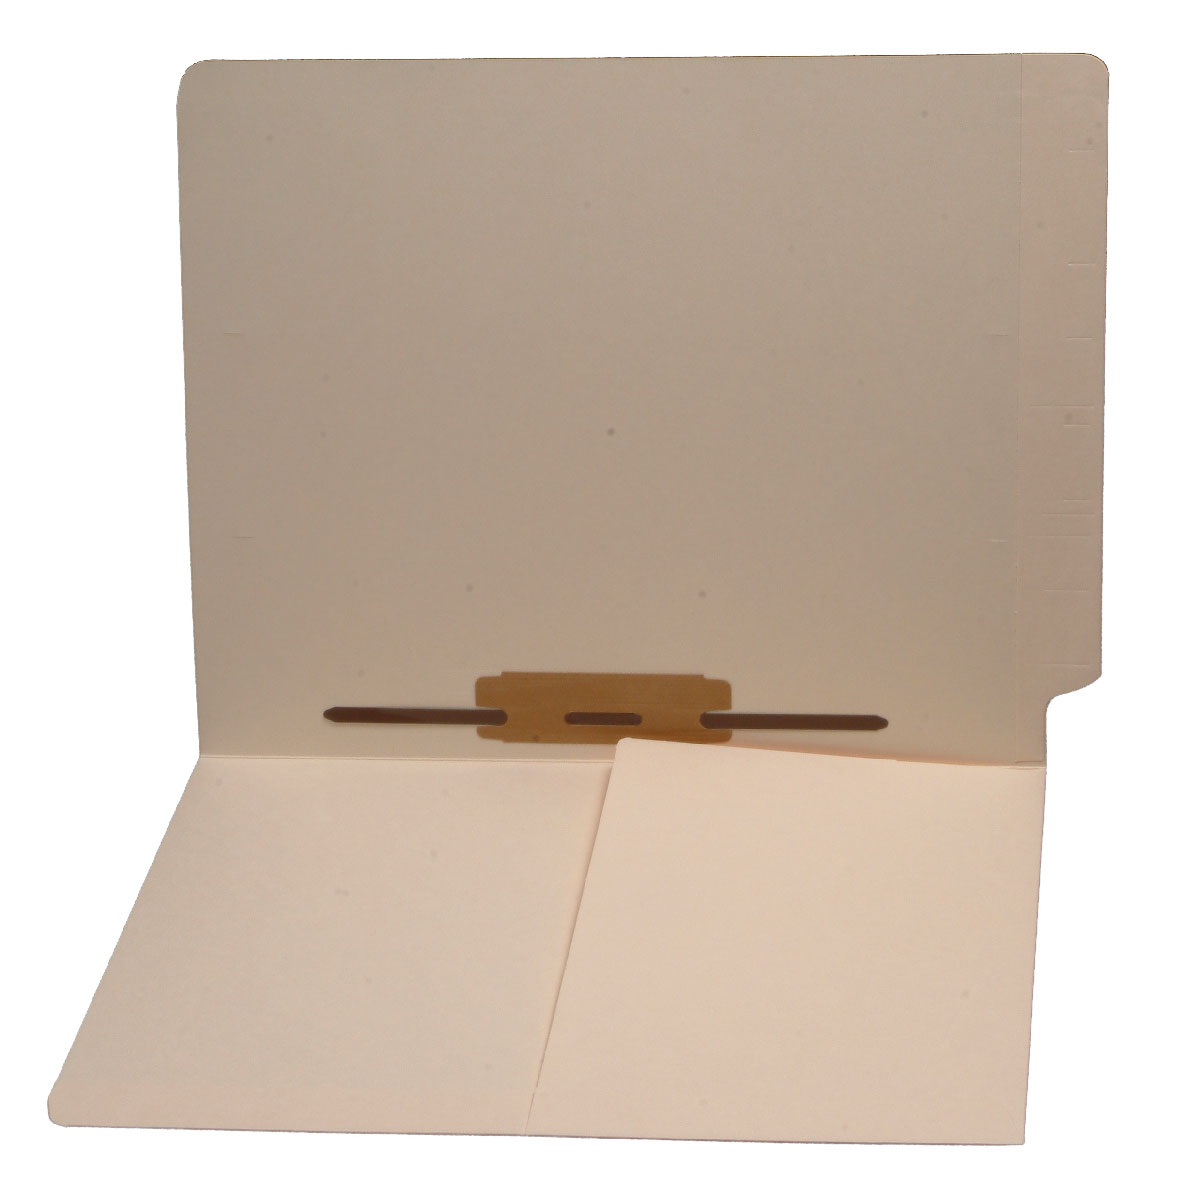 S-9287 - 11 pt Manila Folders, Full Cut End Tab, Letter Size, 1/2 Pocket Inside Front, Fastener Pos #5, Mylar Reinforced (Box of 50)